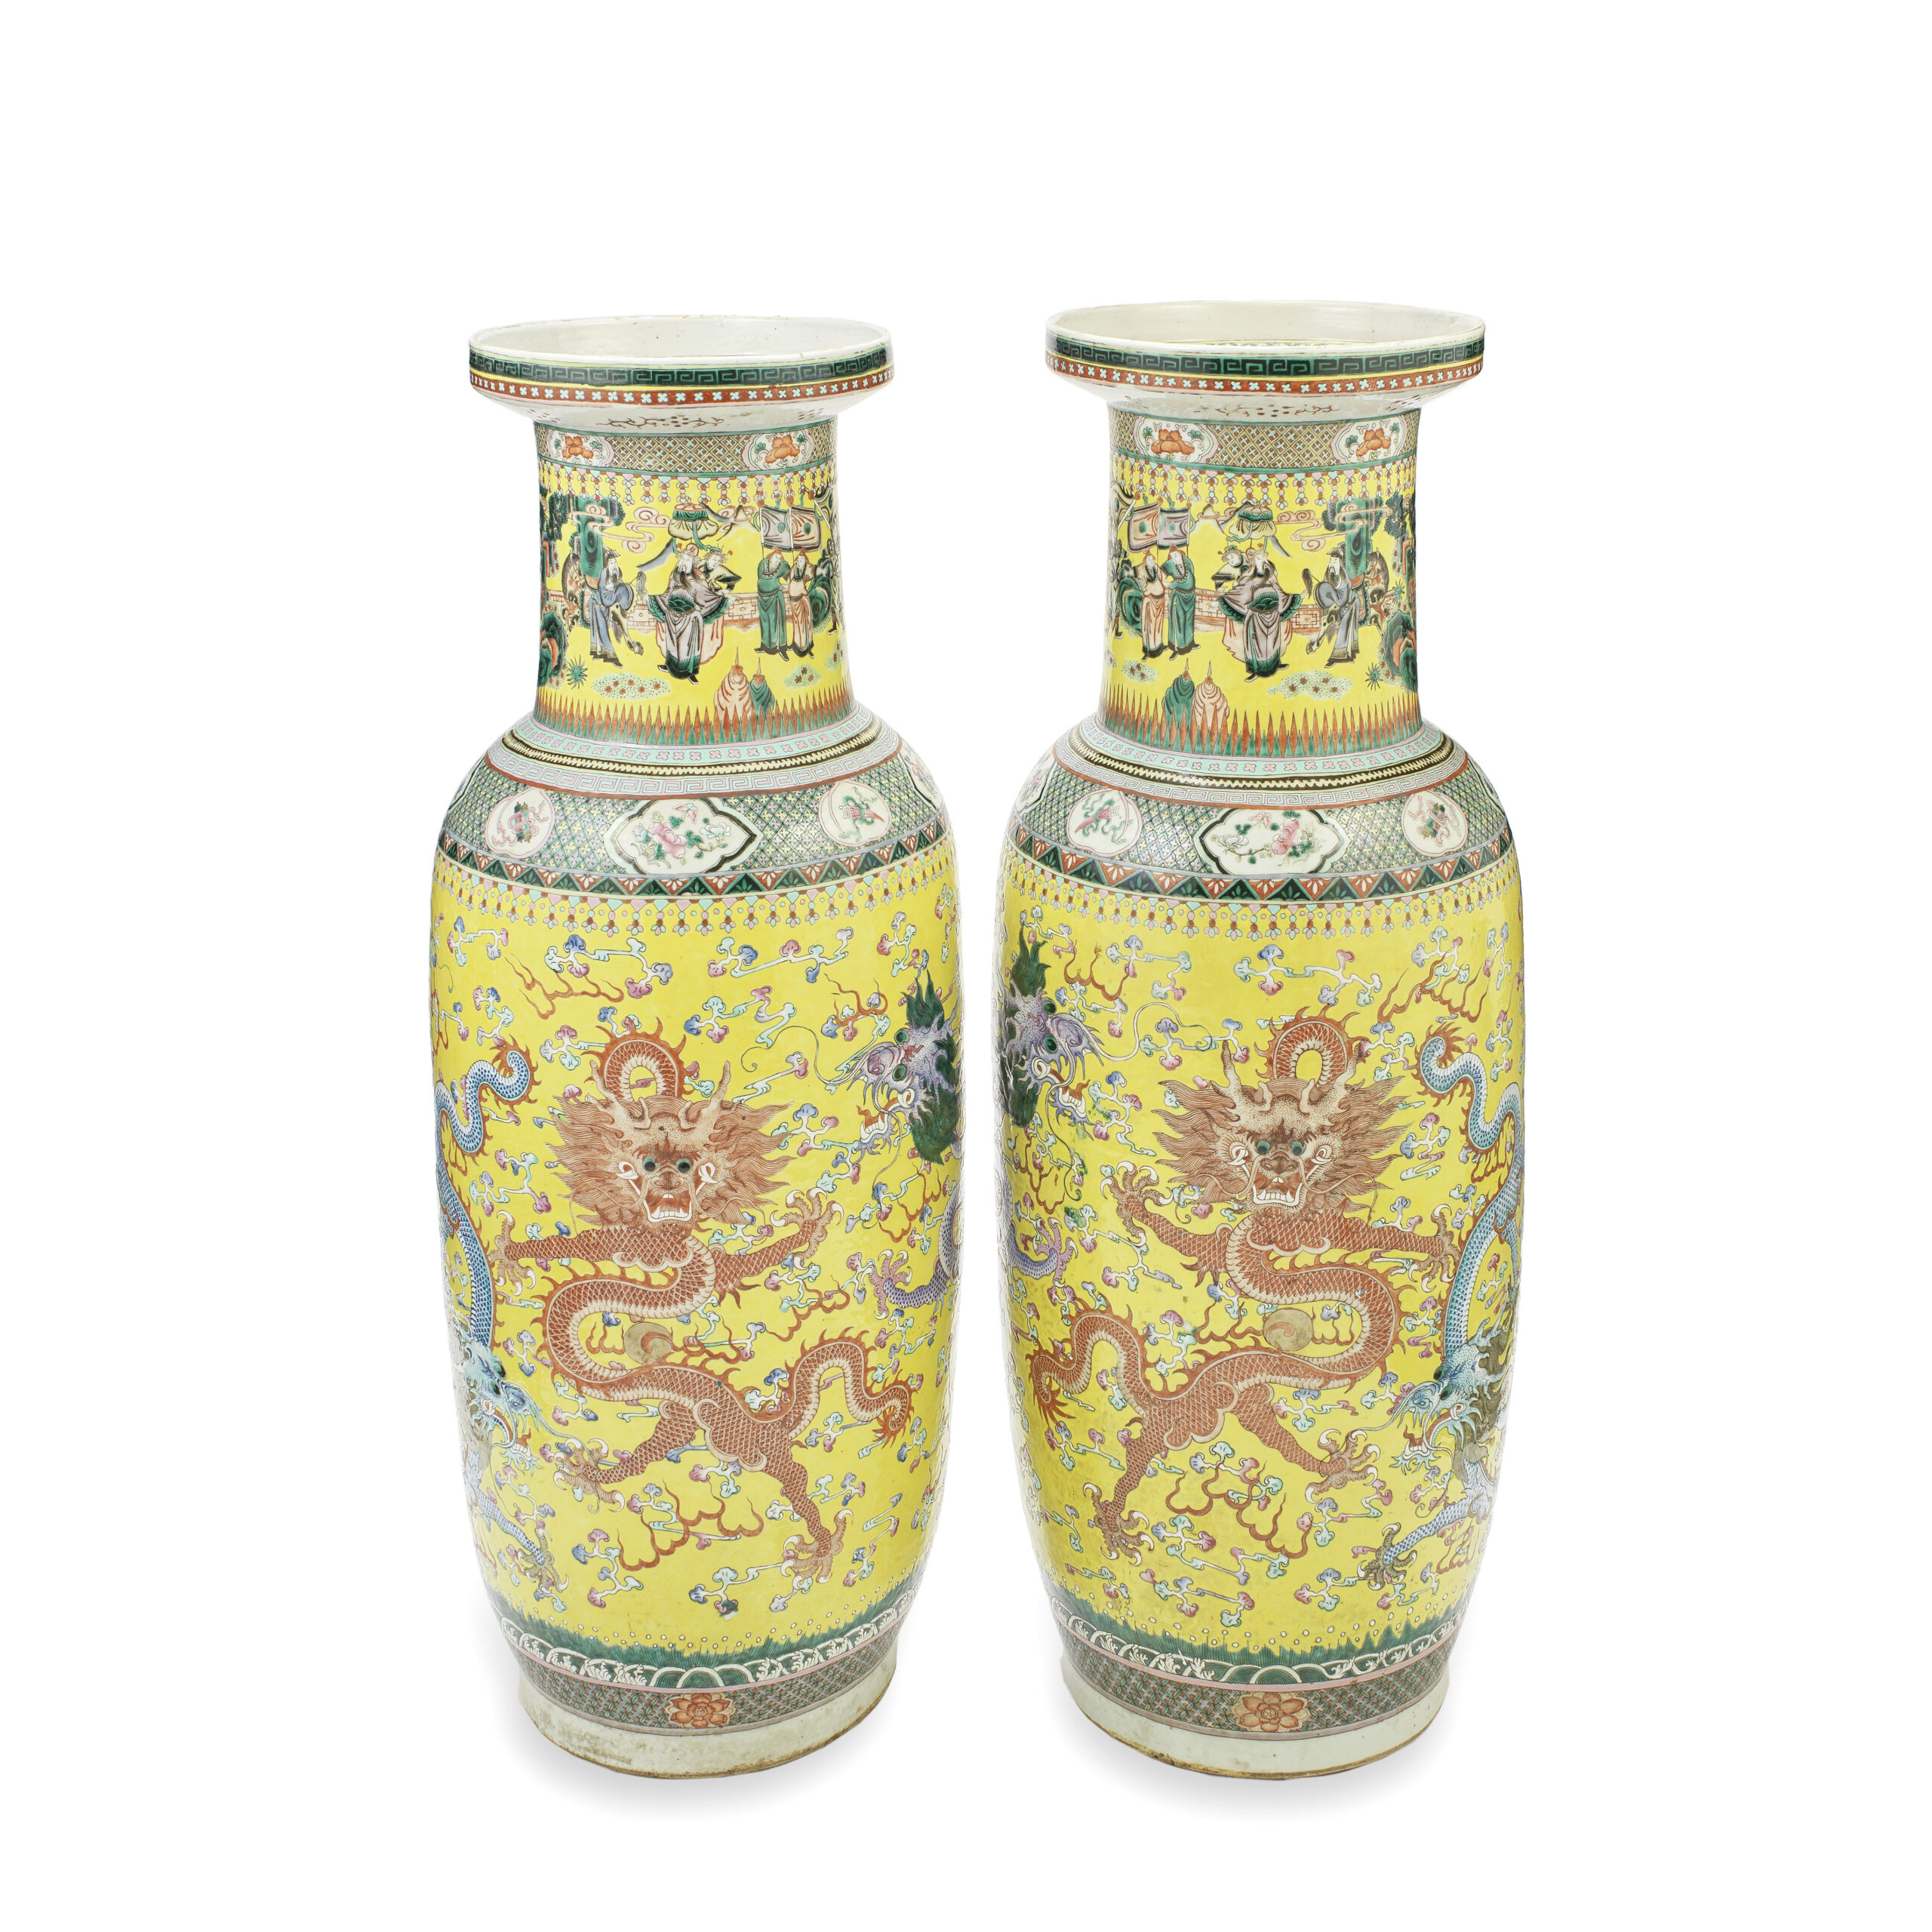 A LARGE PAIR OF FAMILLE ROSE YELLOW-GROUND 'FIVE DRAGON' ROULEAU VASES, 19th century